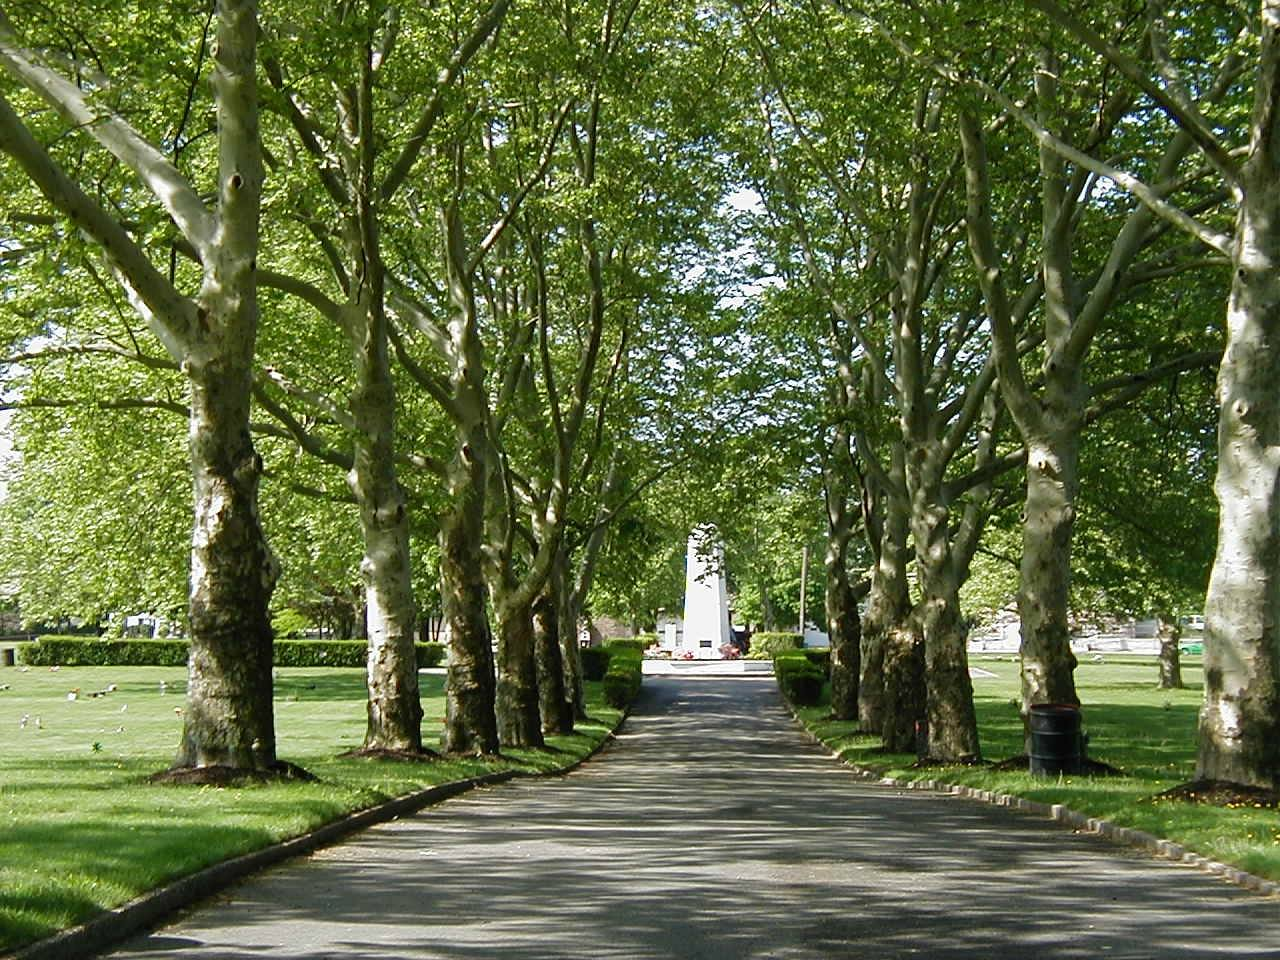 Rows of trees lining a road leading to a memorial at colonial memorial park